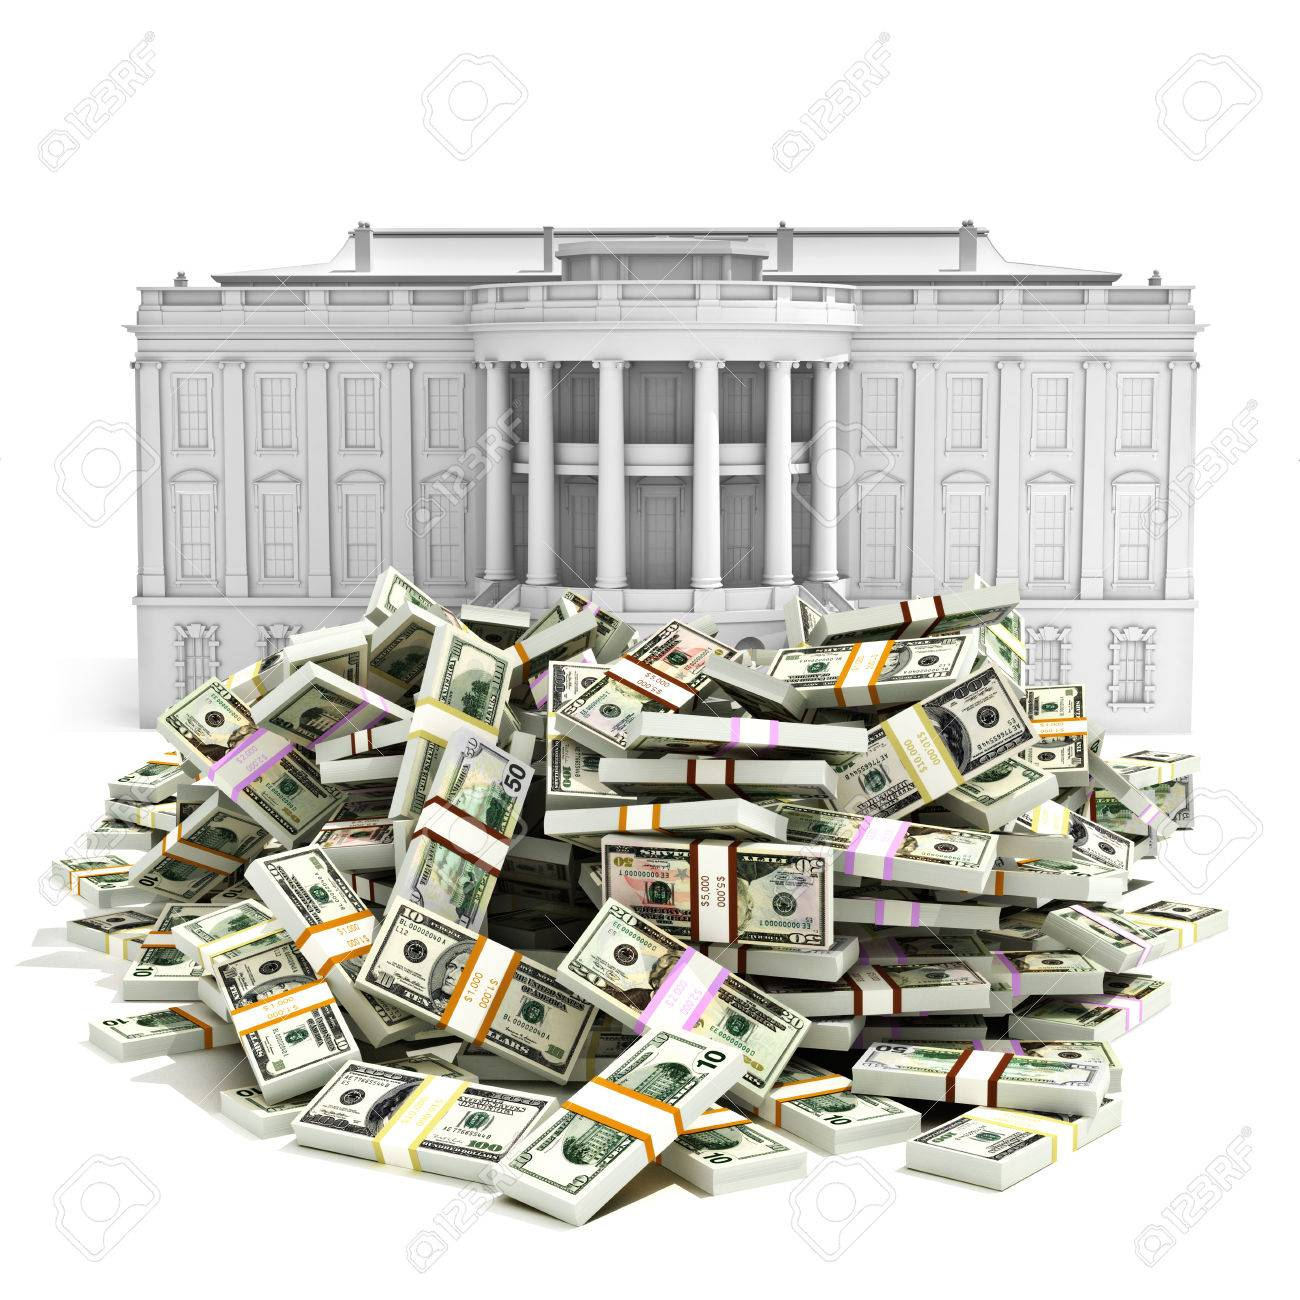 Image result for money buying government